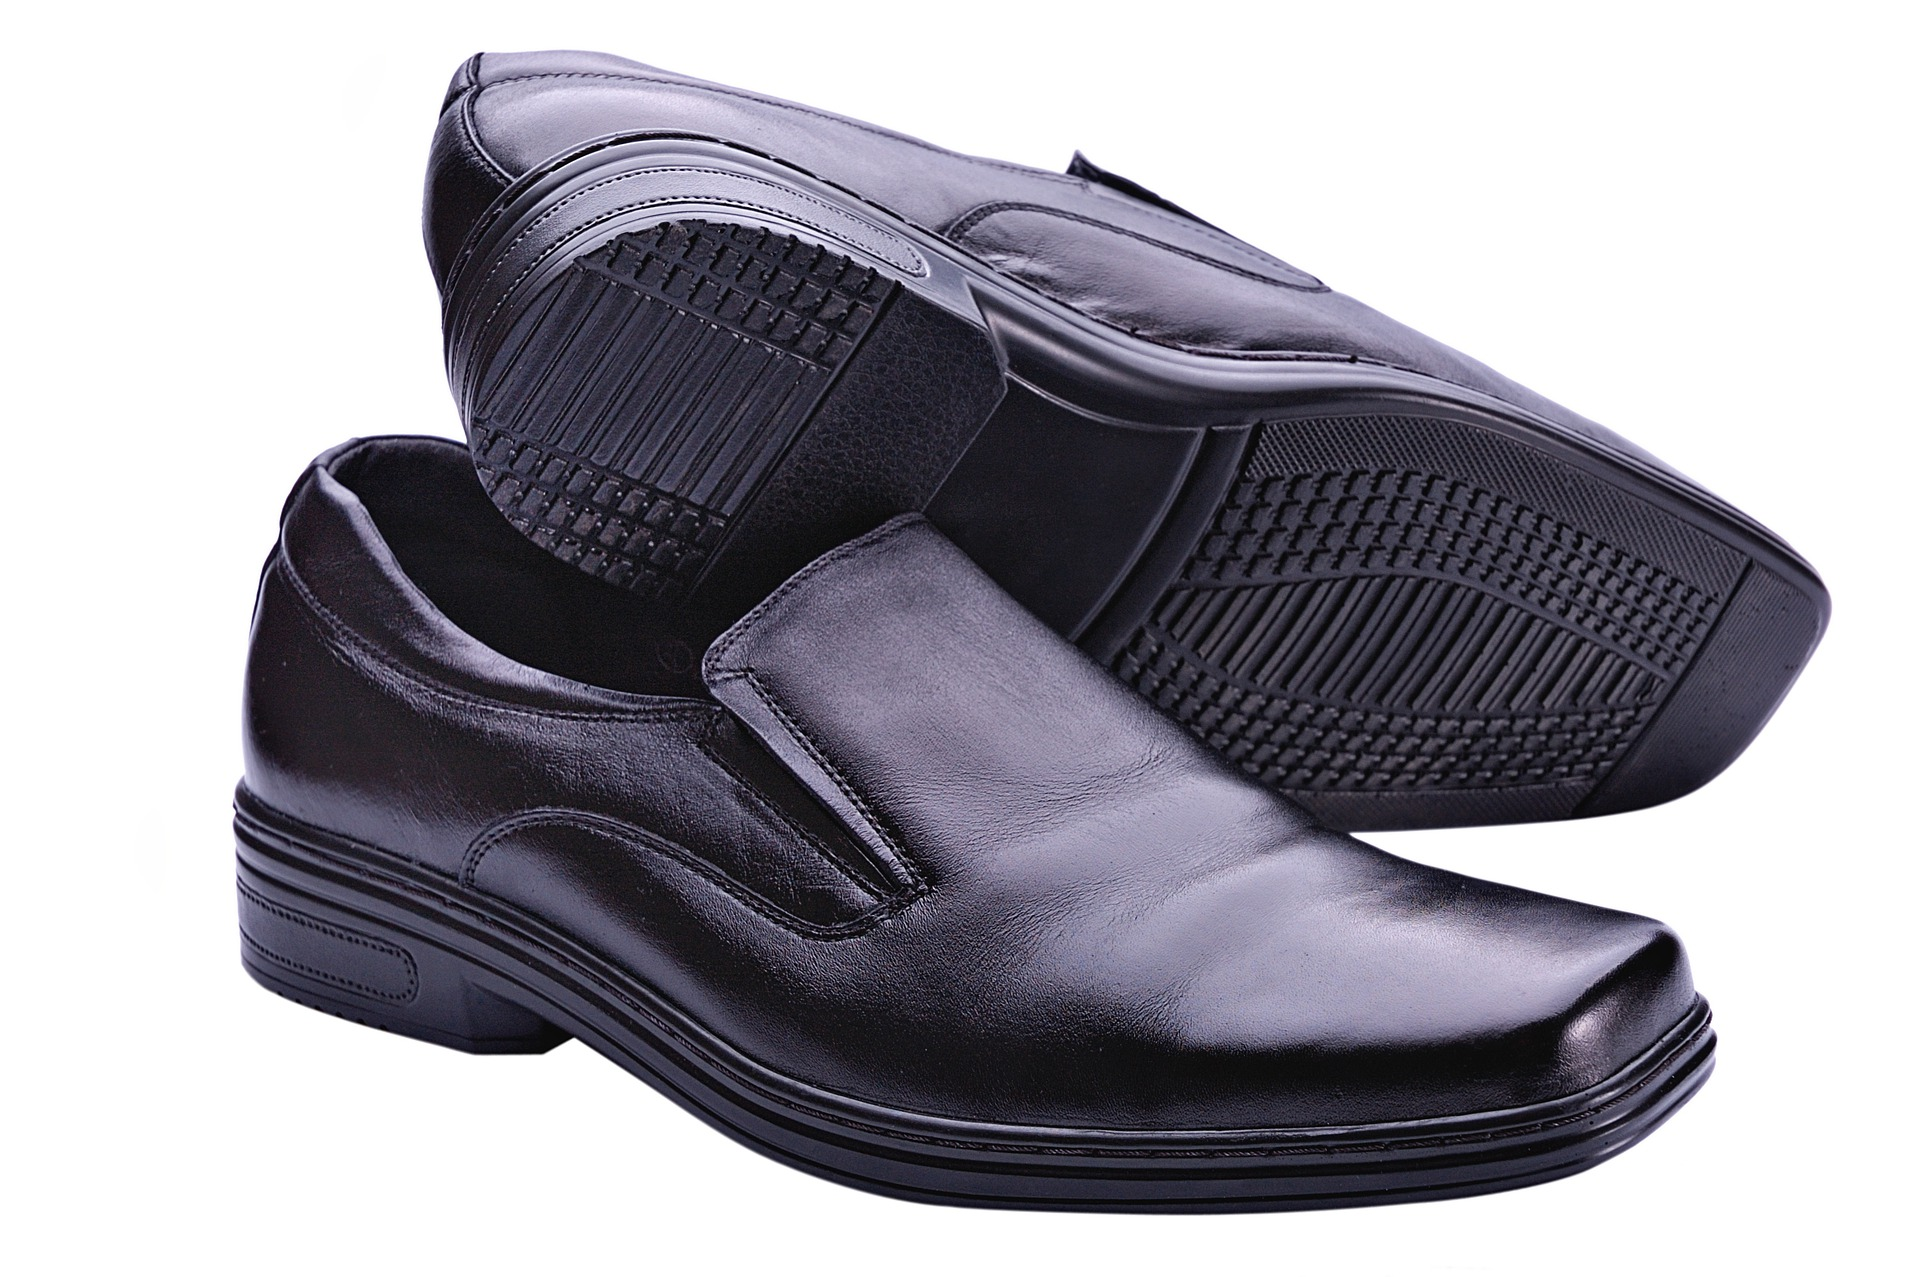 A pair of black loafers for male teachers